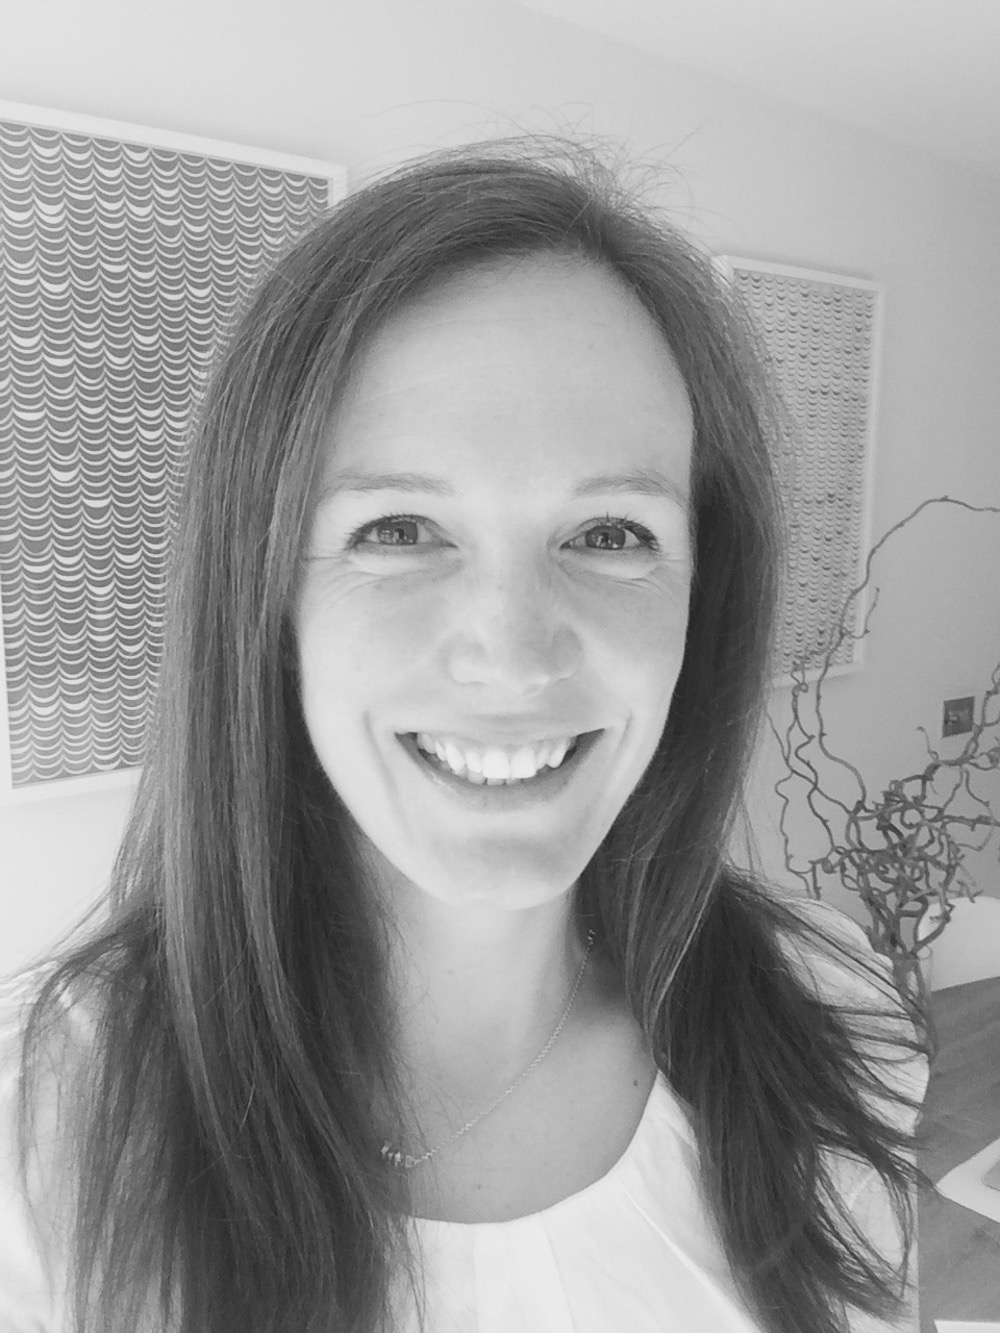 - Dr Molly Anderson is a GP at Gillingham Medical Practice and The Fontmell Clinic. She is also a mother of 2 young girls.